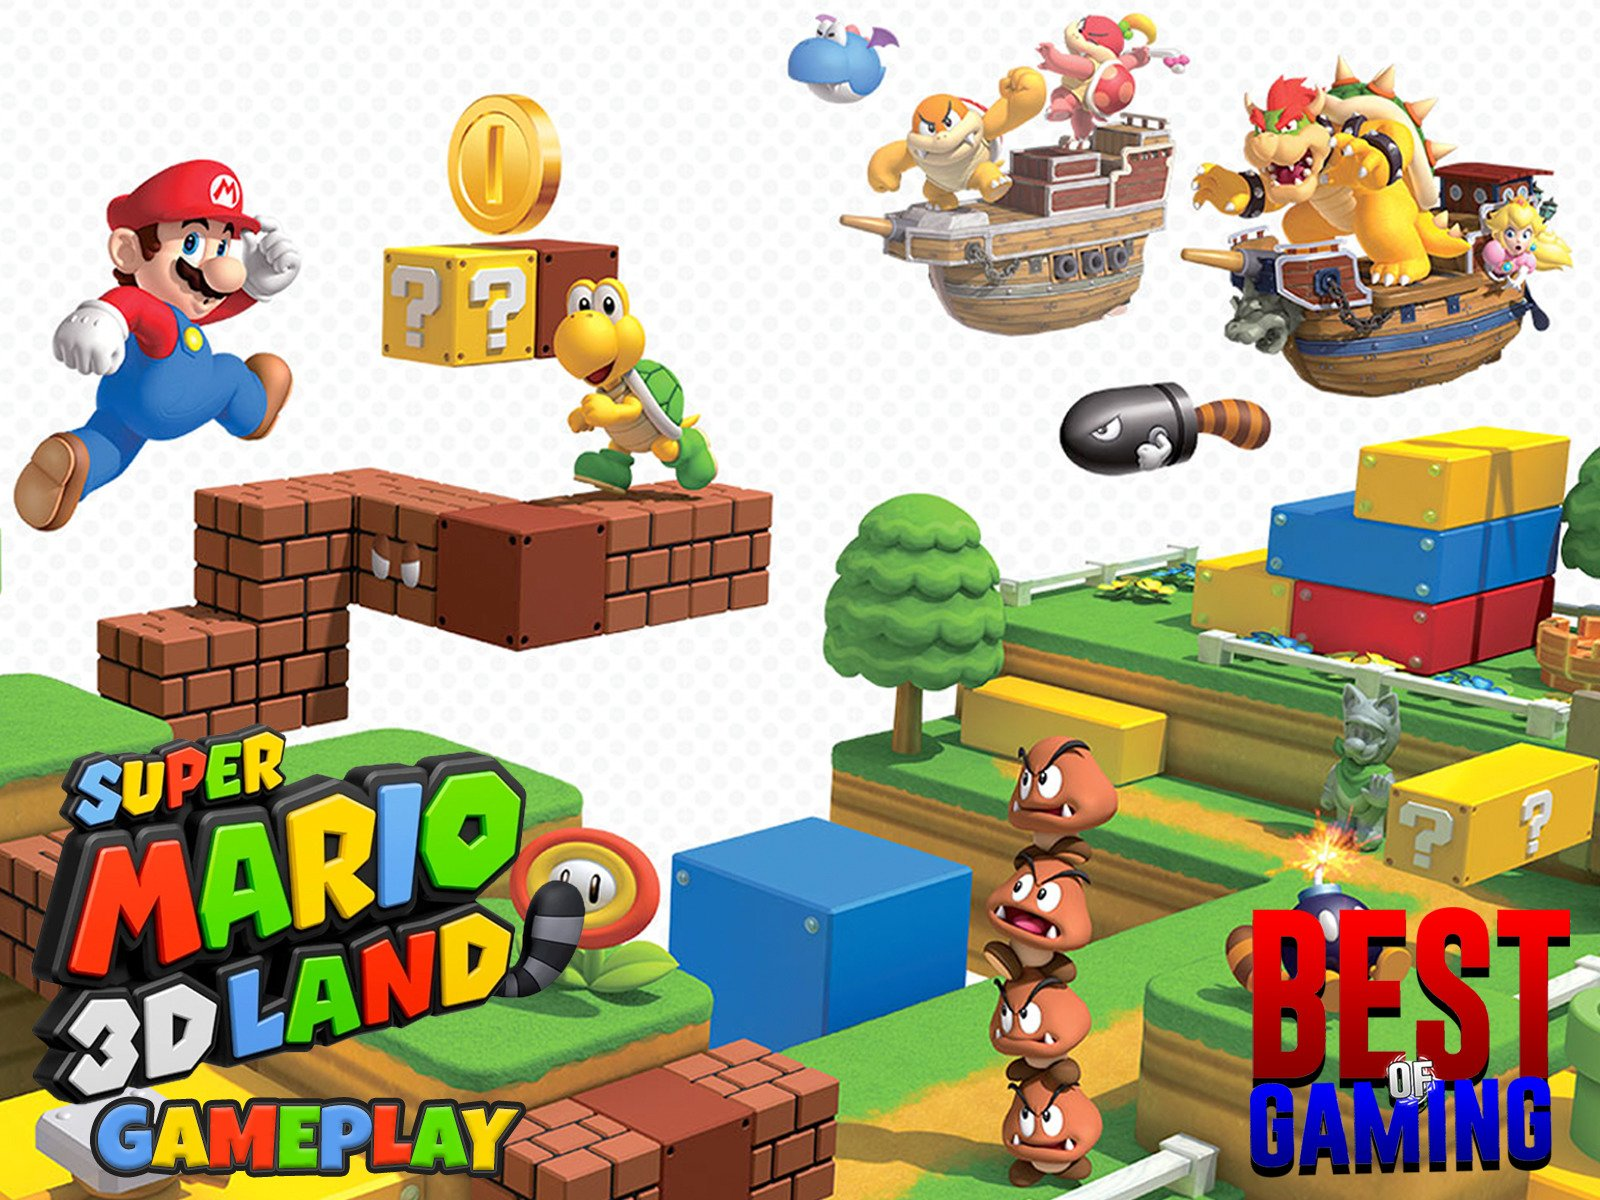 Clip: Super Mario 3D Land Gameplay - Season 1